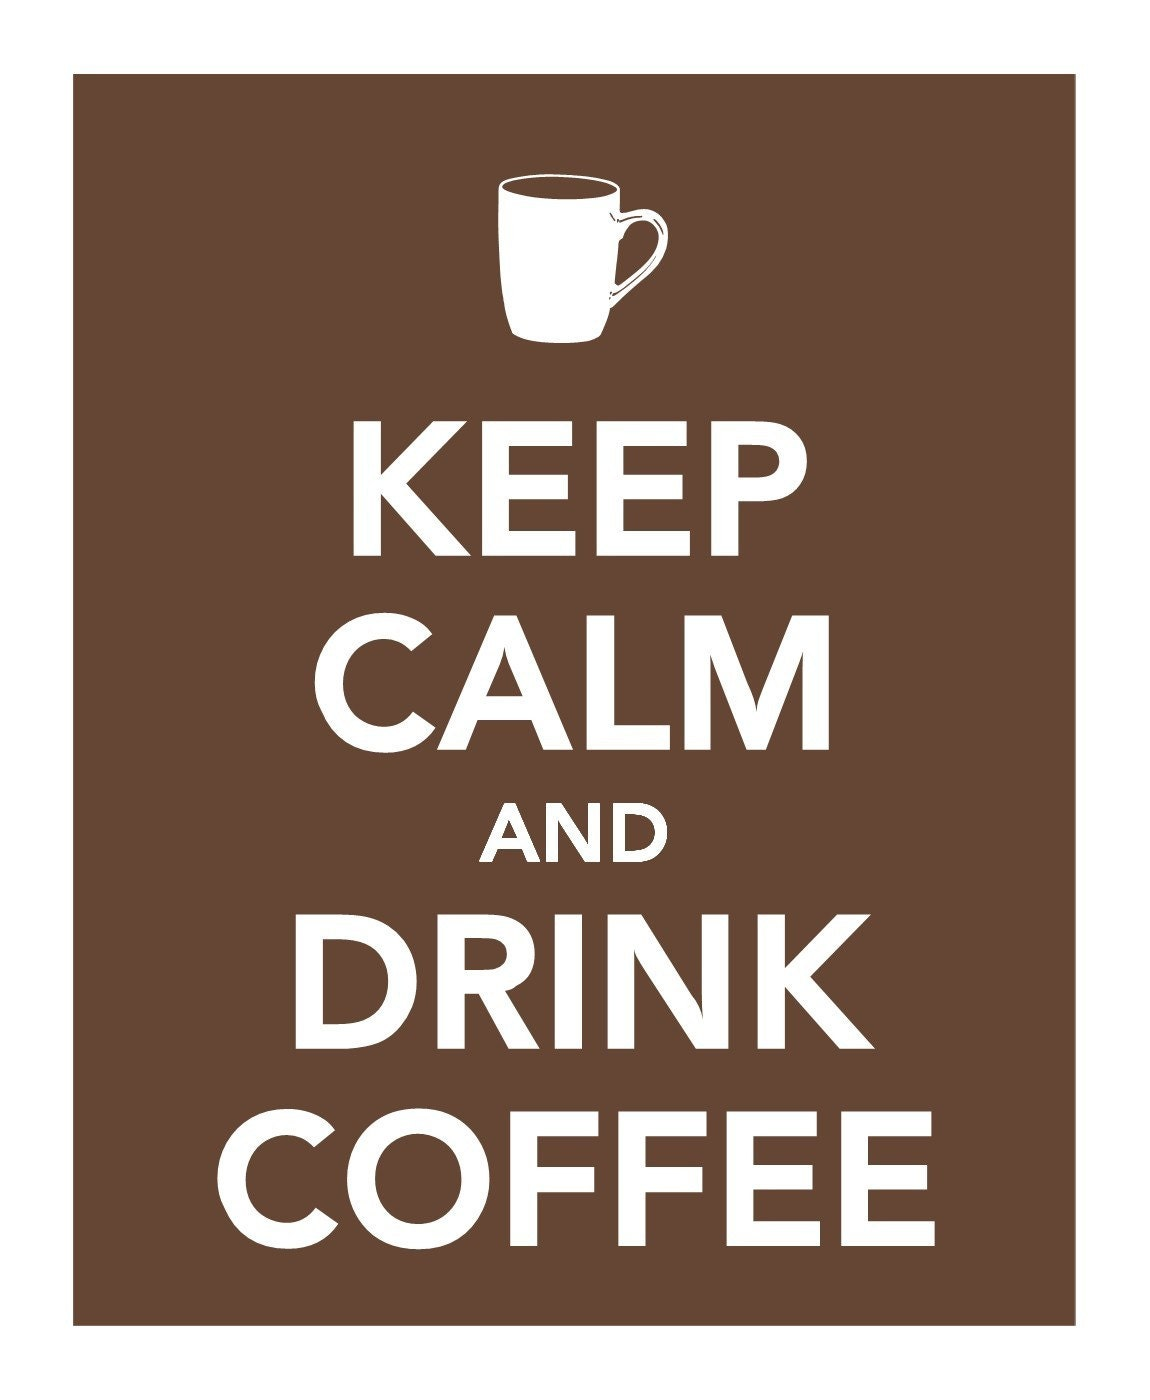 Keep Calm and Drink Coffee Print - Buy Three Get One FREE